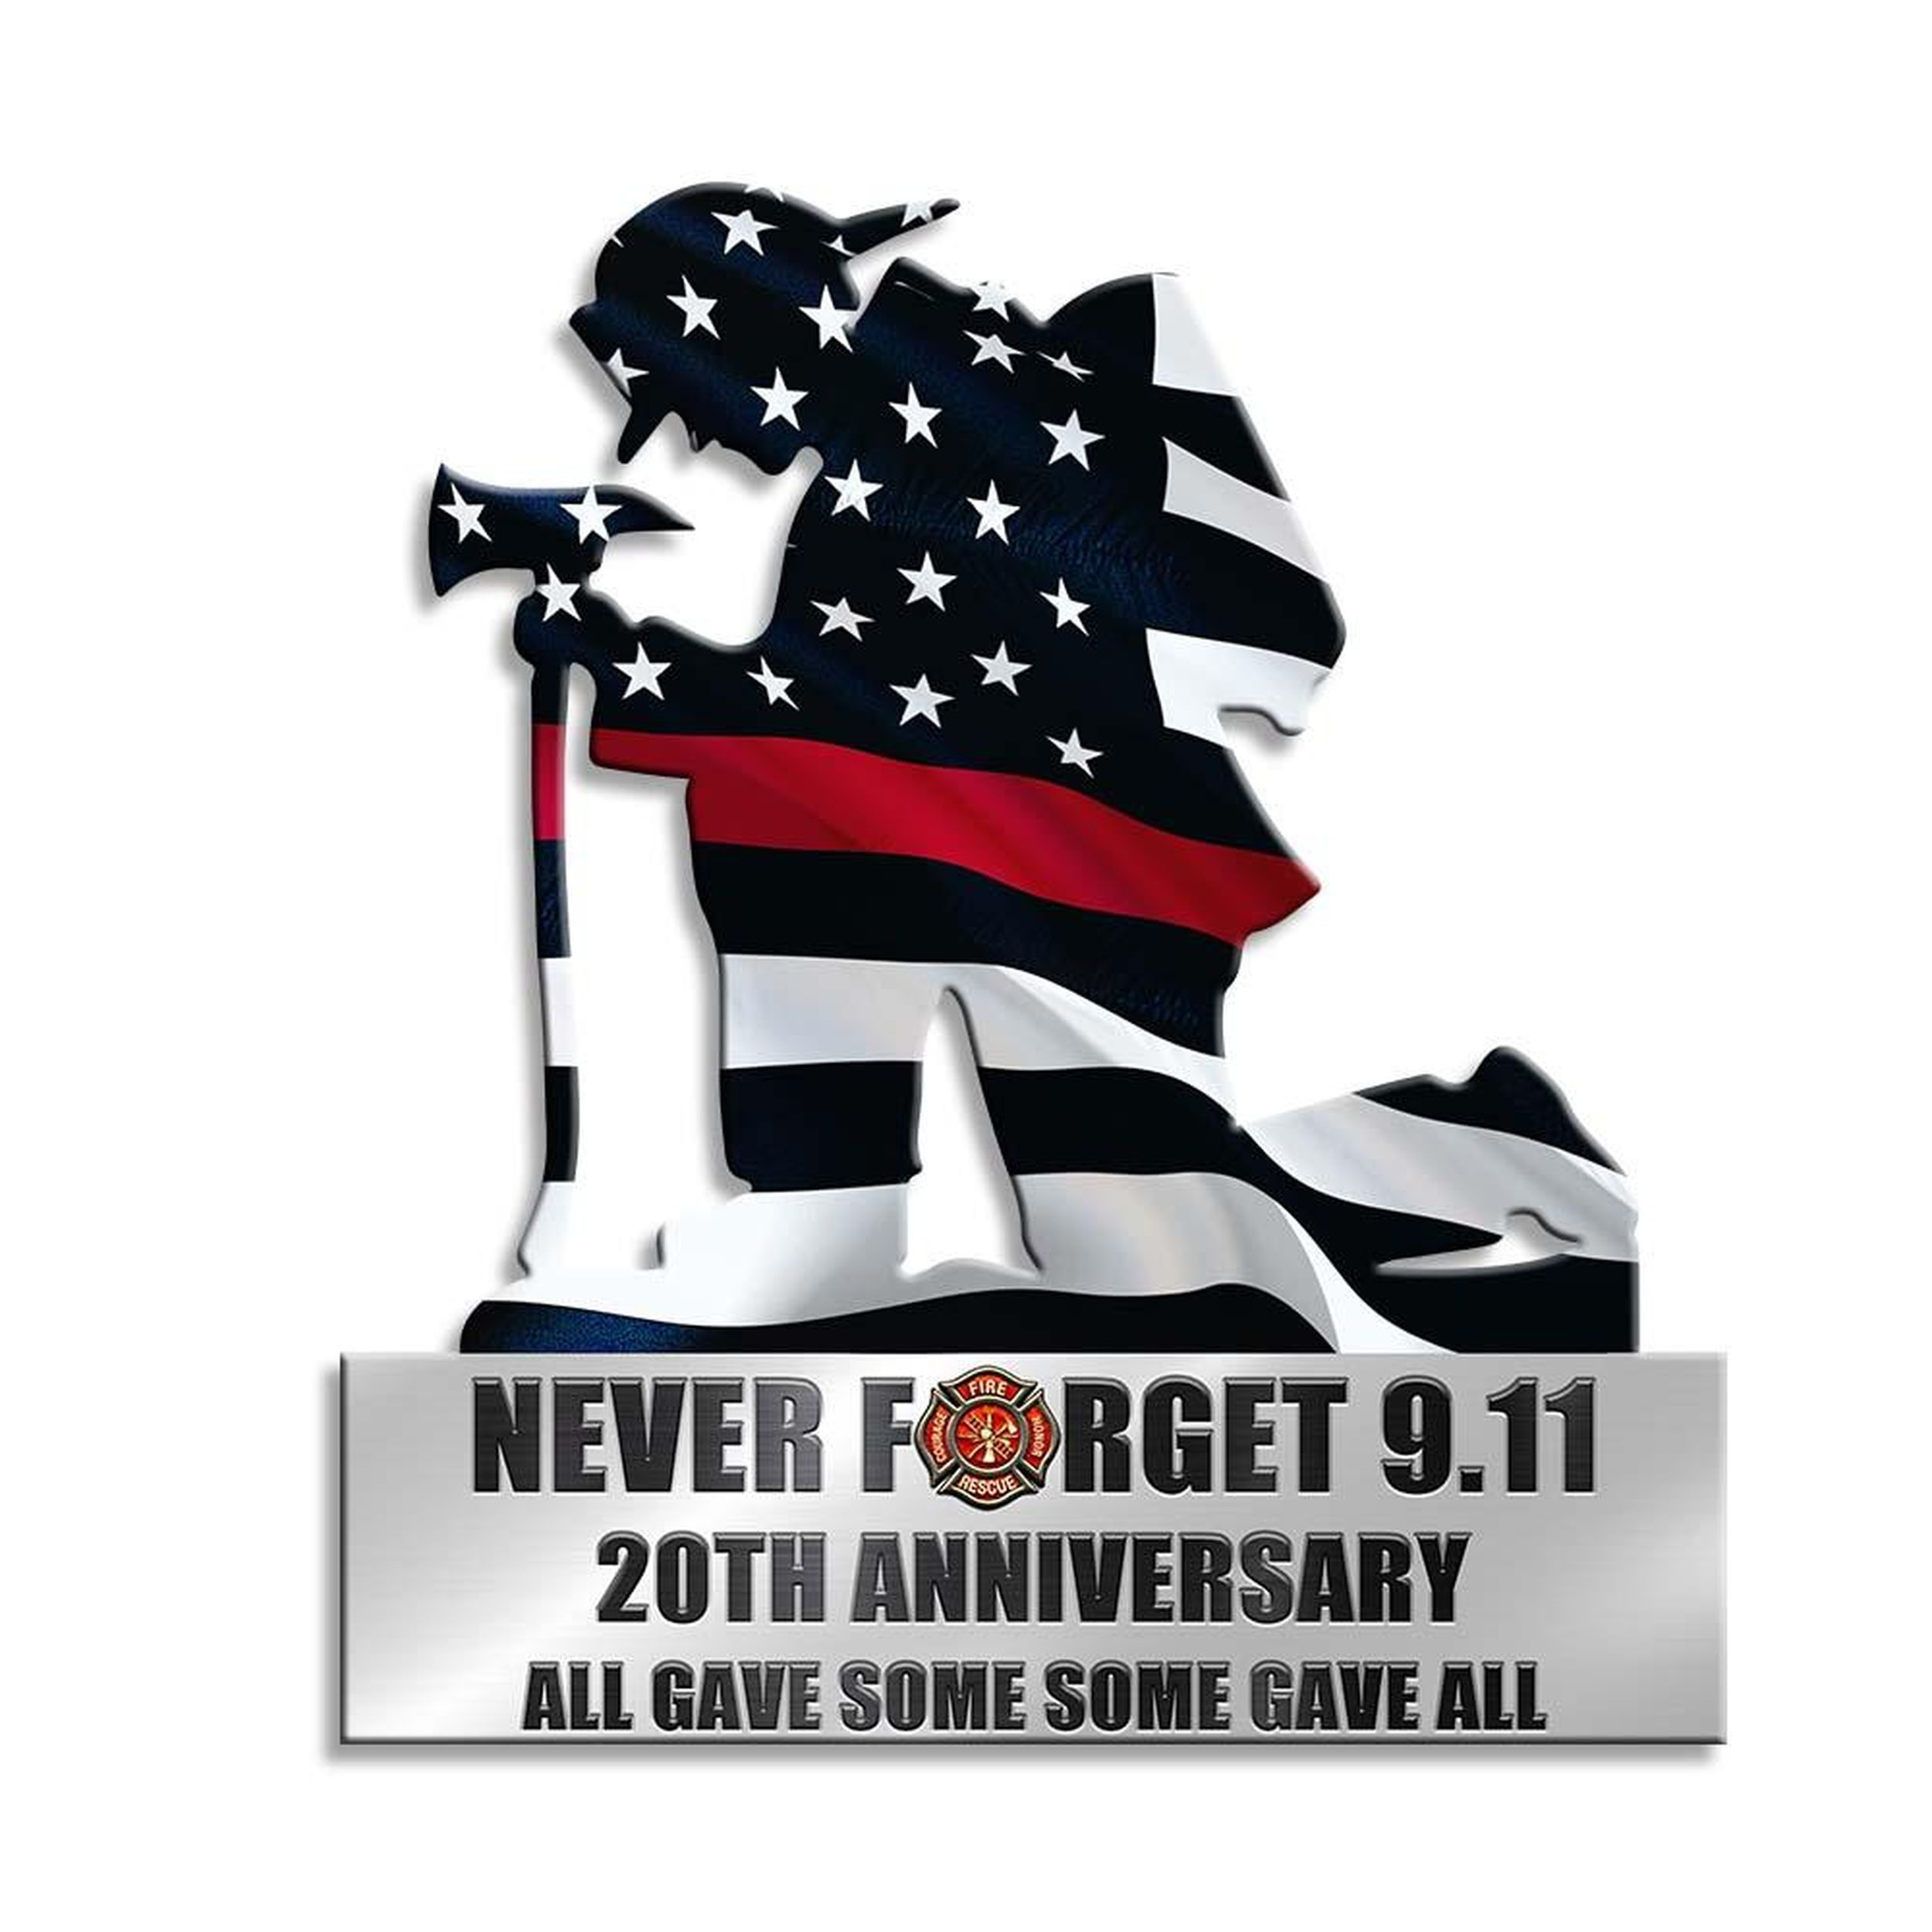 Kneeling firefighter never forget 9 11 20th anniversary yard sign